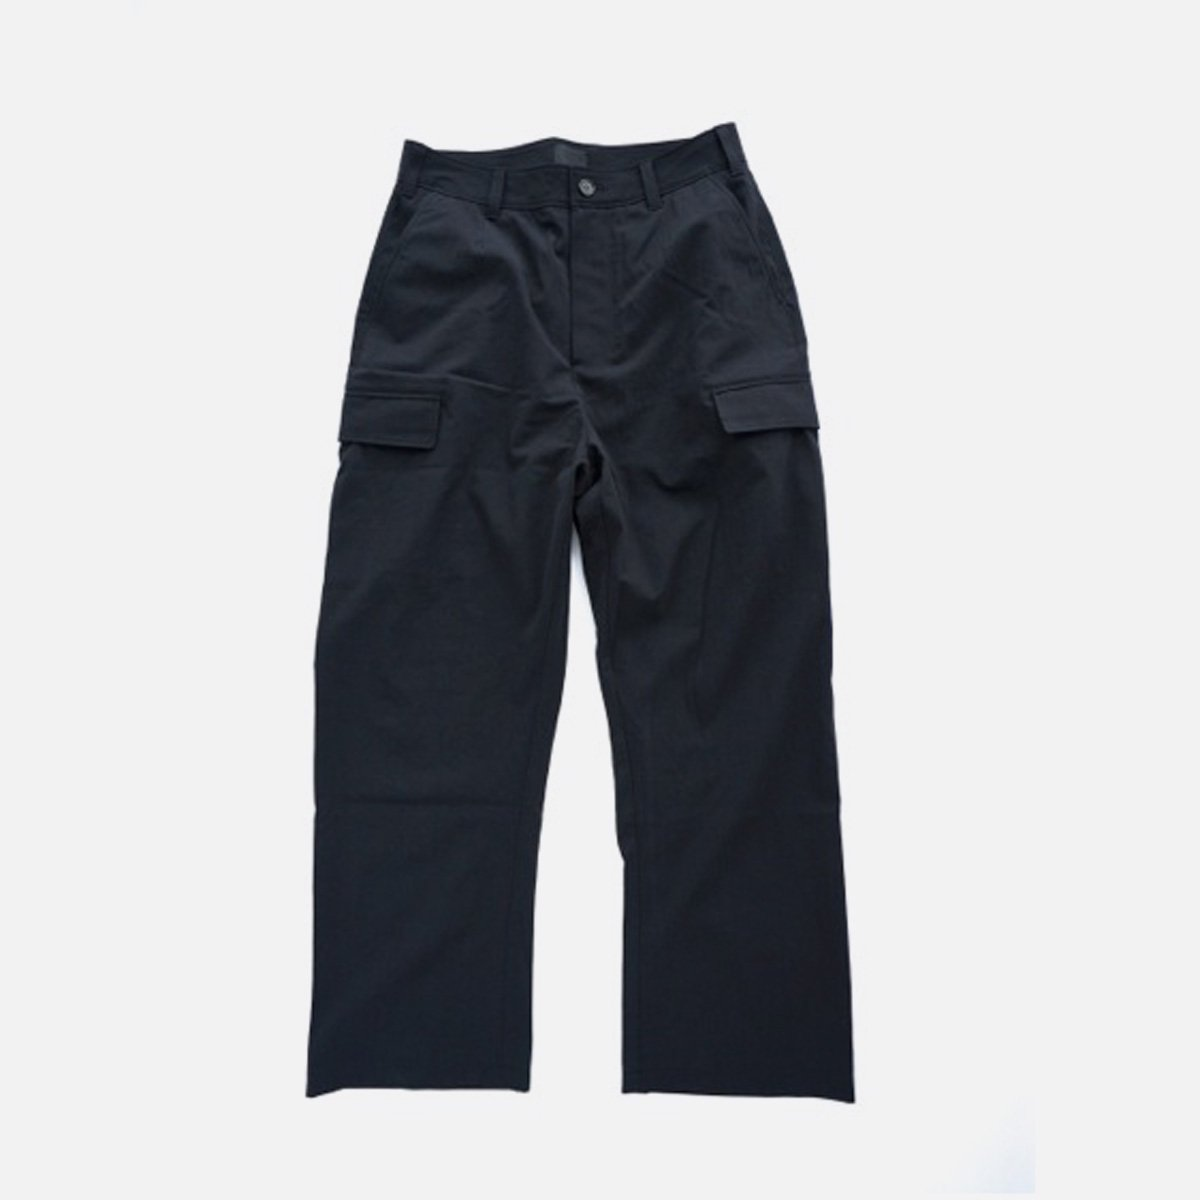 山内 COTTON VOILE 6PKT PANTS (black)